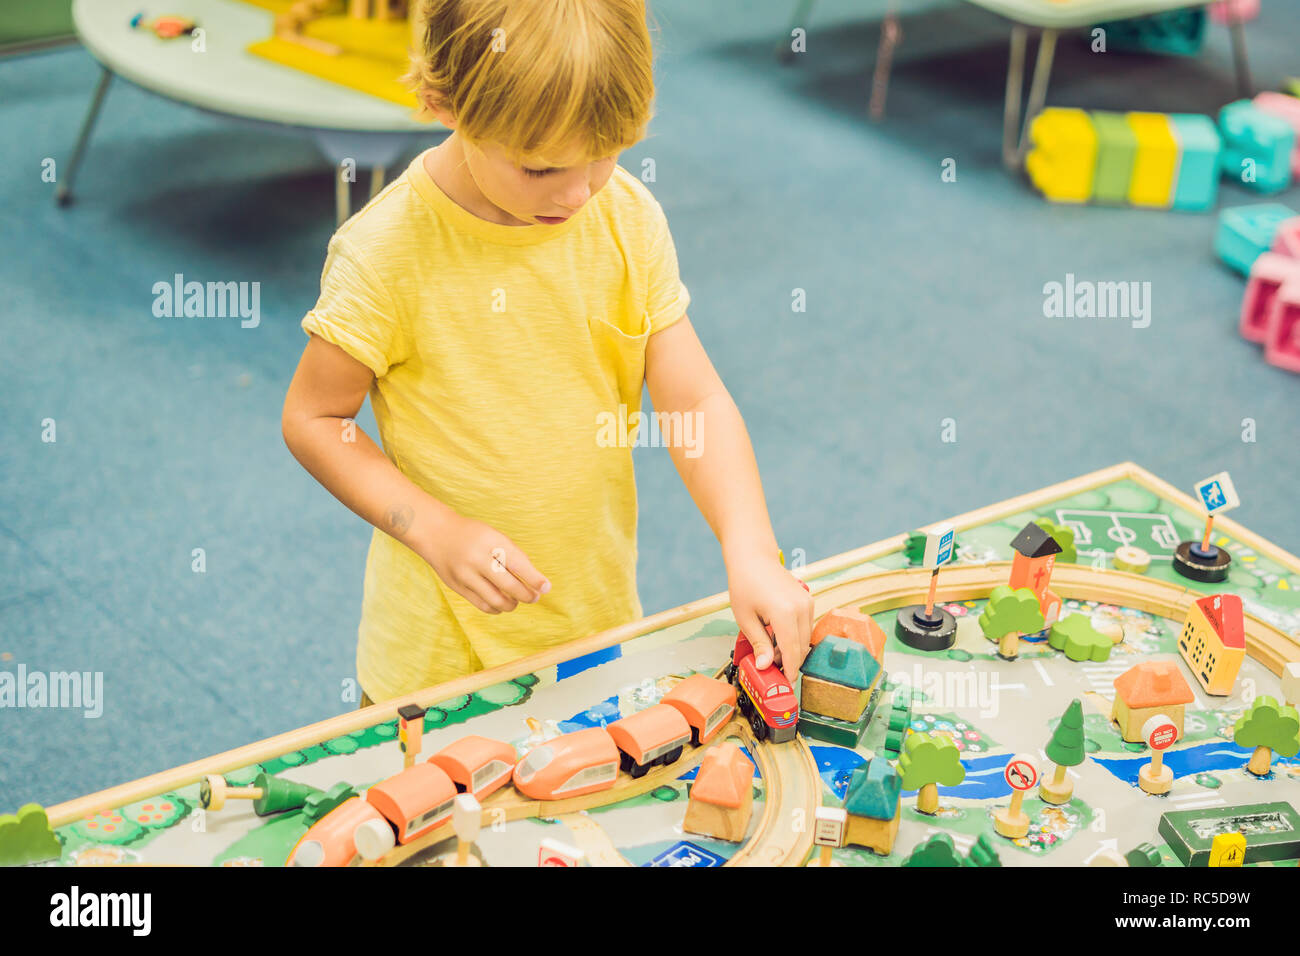 Children play with wooden toy, build toy railroad at home or daycare. Toddler boy play with crane, train and cars. Educational toys for preschool and kindergarten child. Cushioned furniture, chair bag - Stock Image